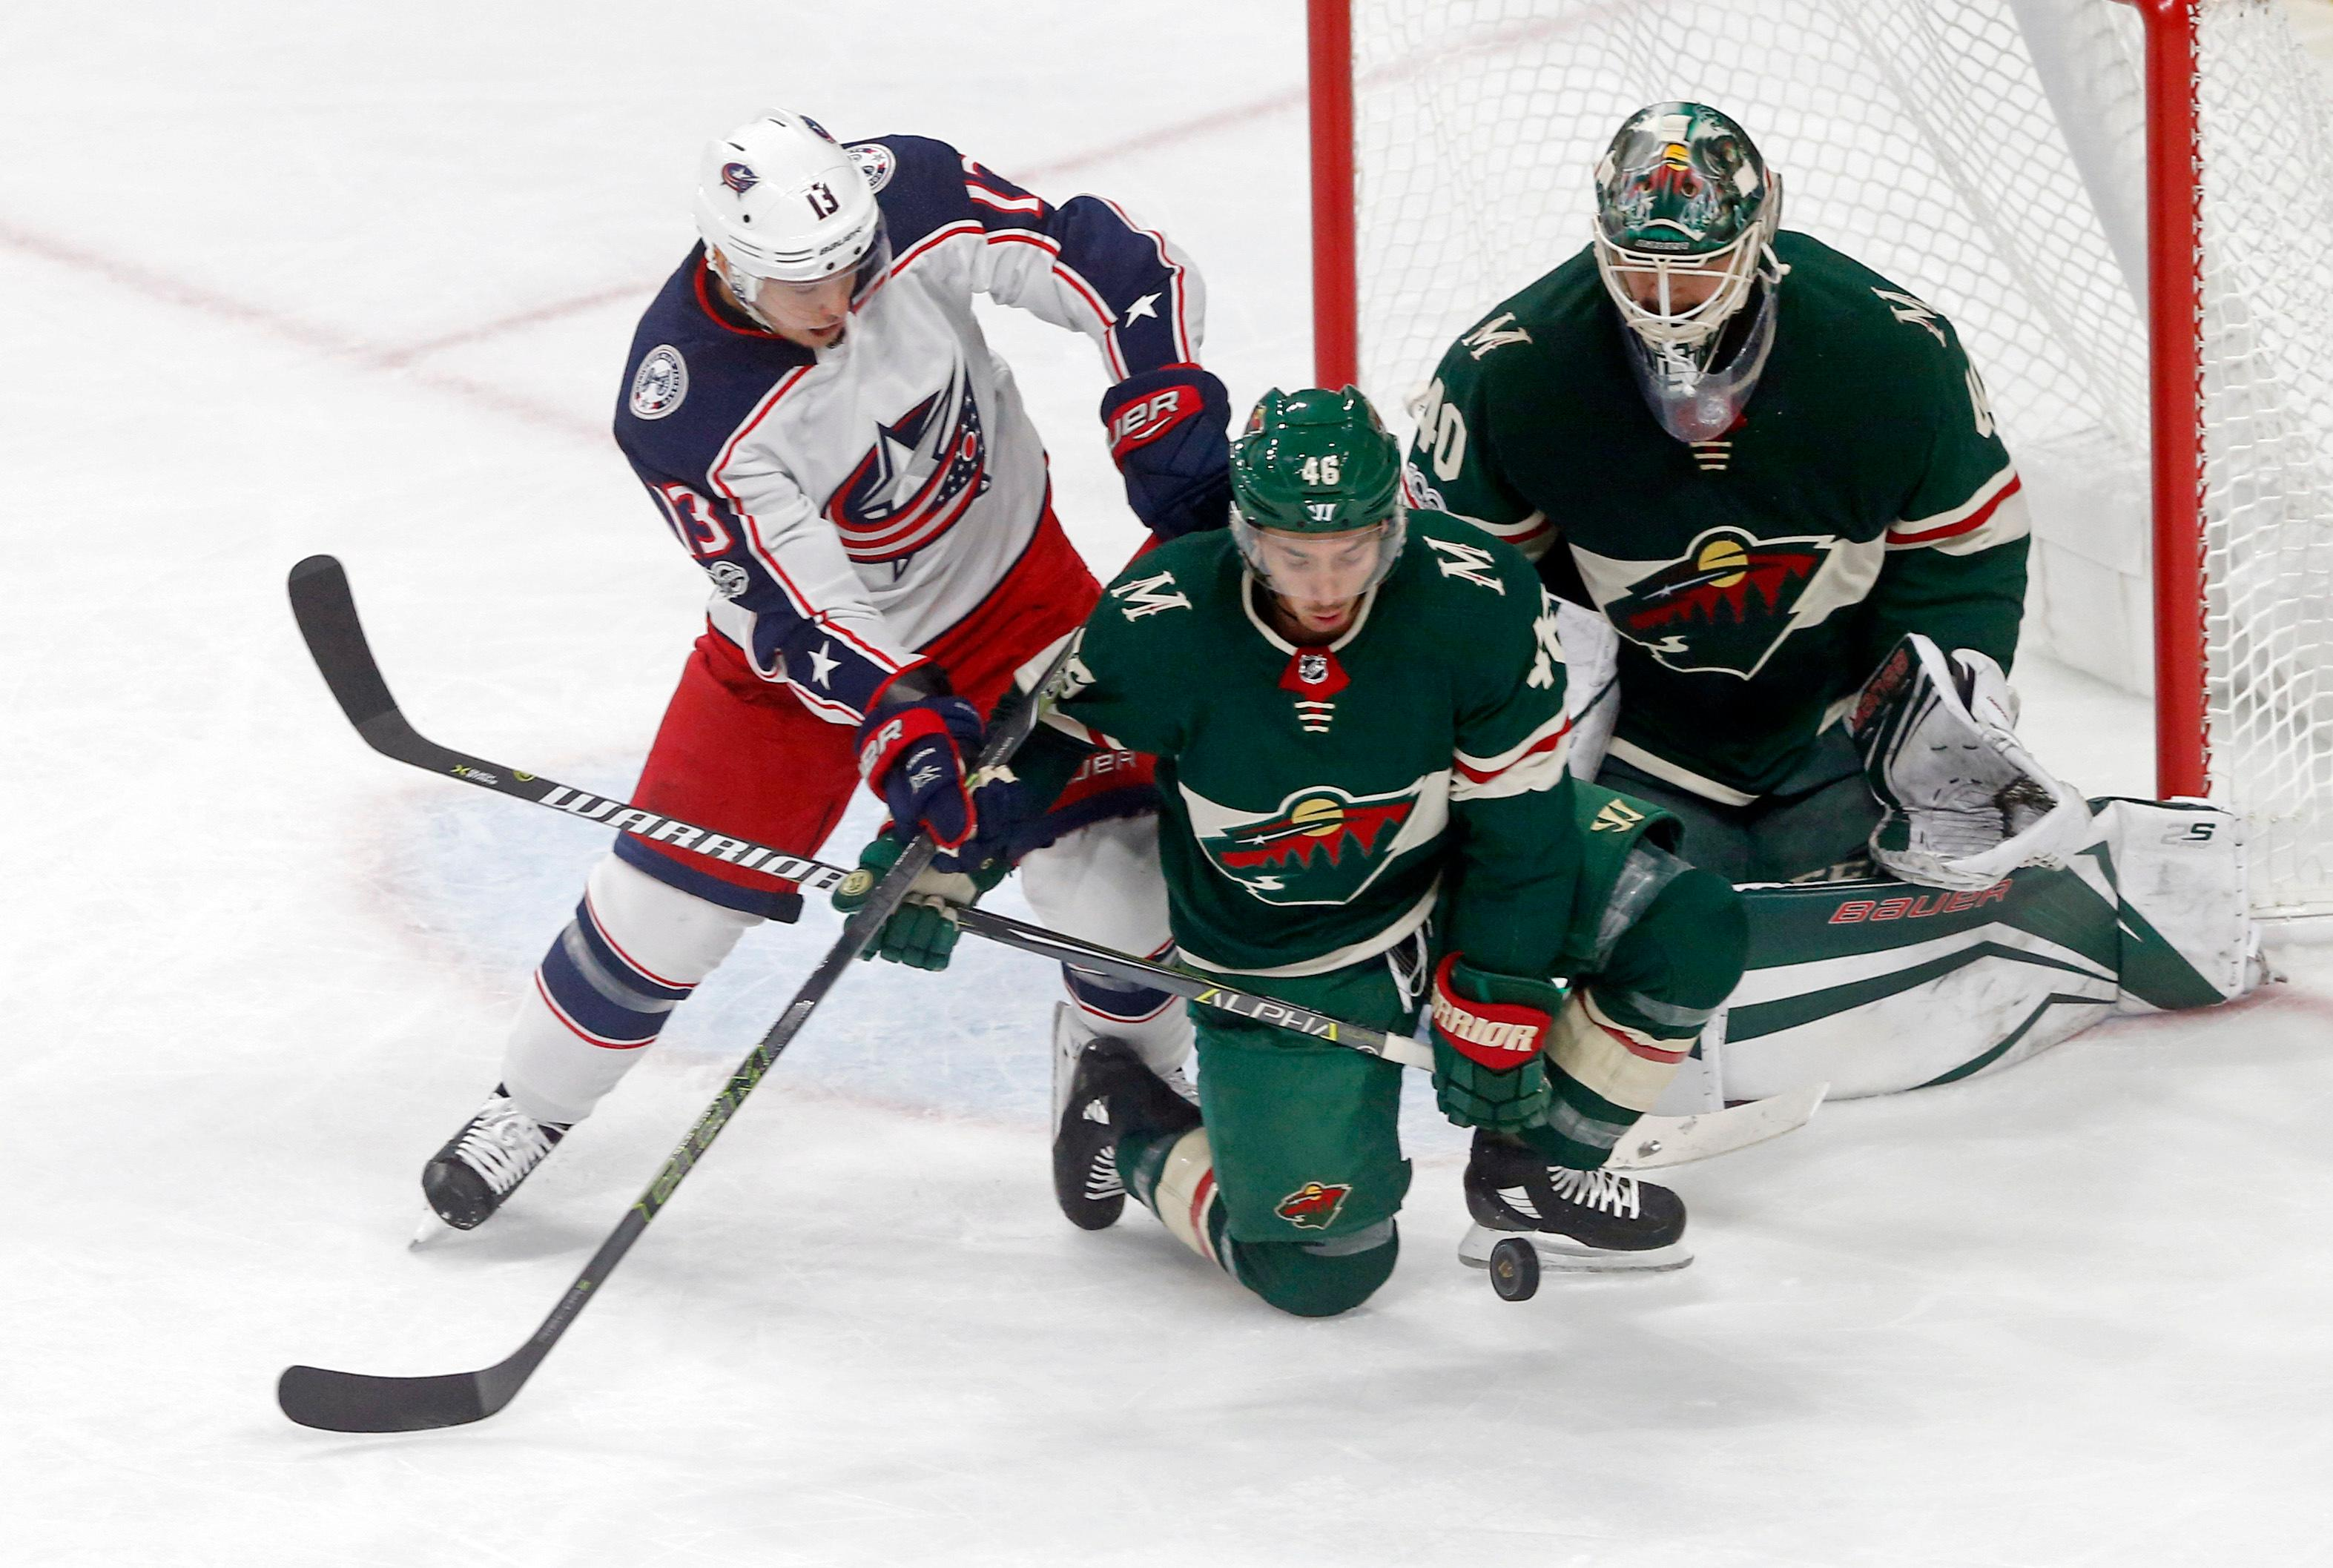 Minnesota Wild's Jared Spurgeon, center, tries to keep Columbus Blue Jackets' Cam Atkinson, left, away from the puck as Wild goalie Devan Dubnyk, right, defends the net during the first period of an NHL hockey game Saturday, Oct. 14, 2017, in St. Paul, Minn. (AP Photo/Jim Mone)